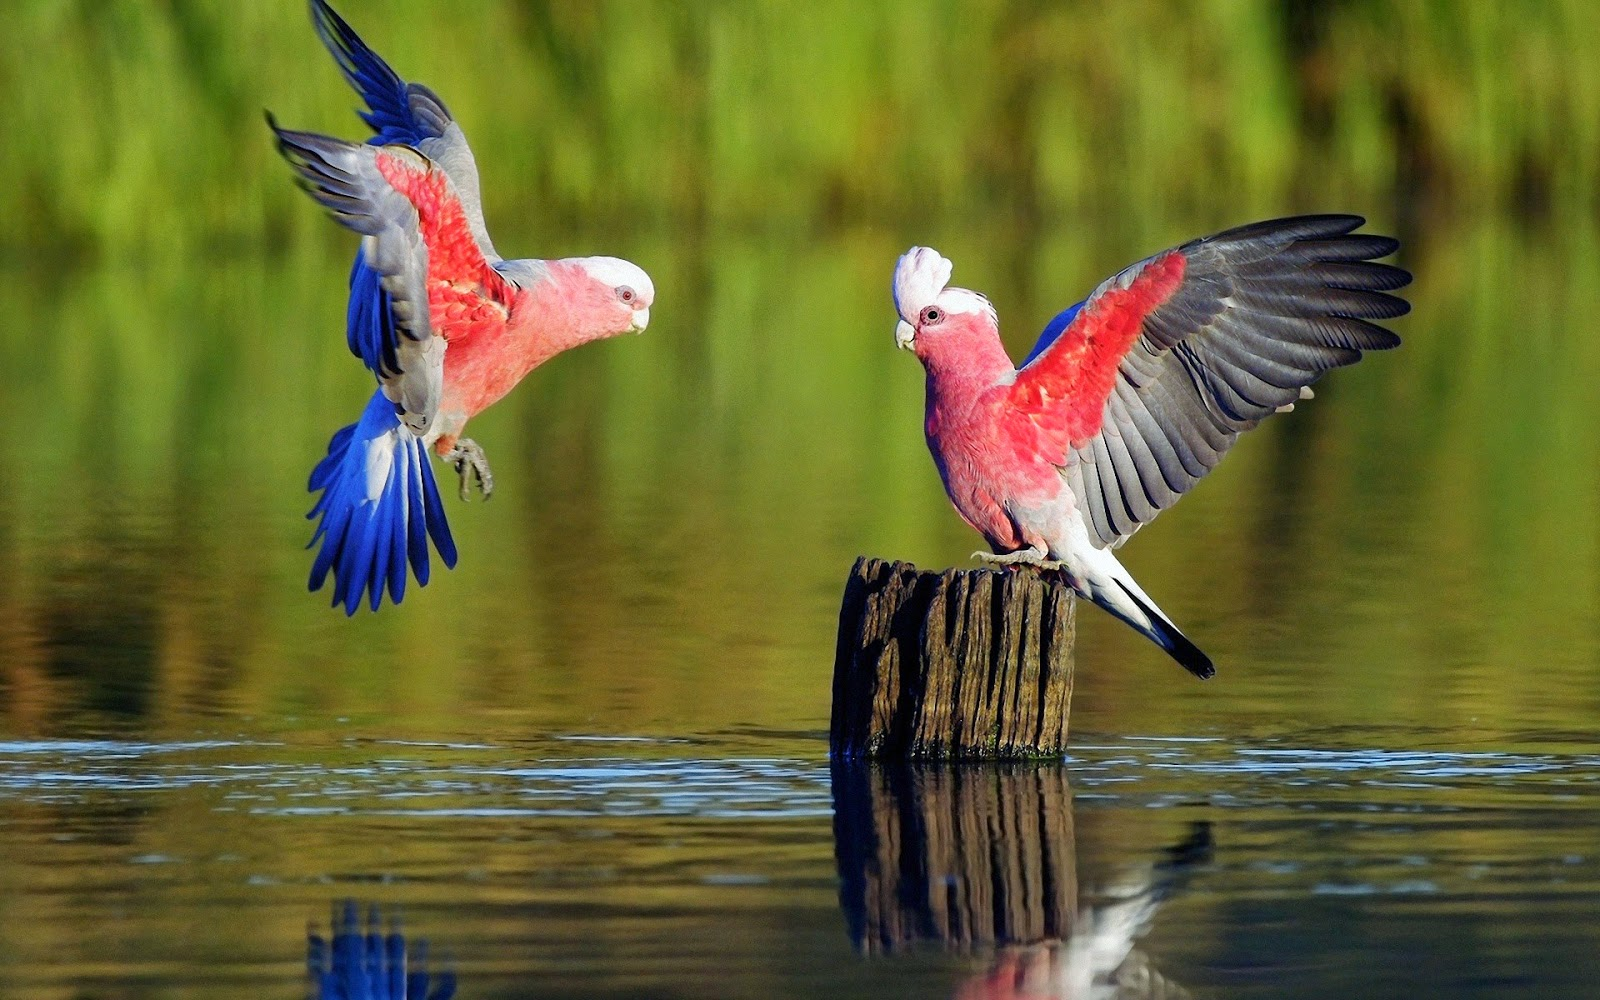 Best Most Amazing And Beautiful Birds In The World - Best Images In The World Hd - HD Wallpaper